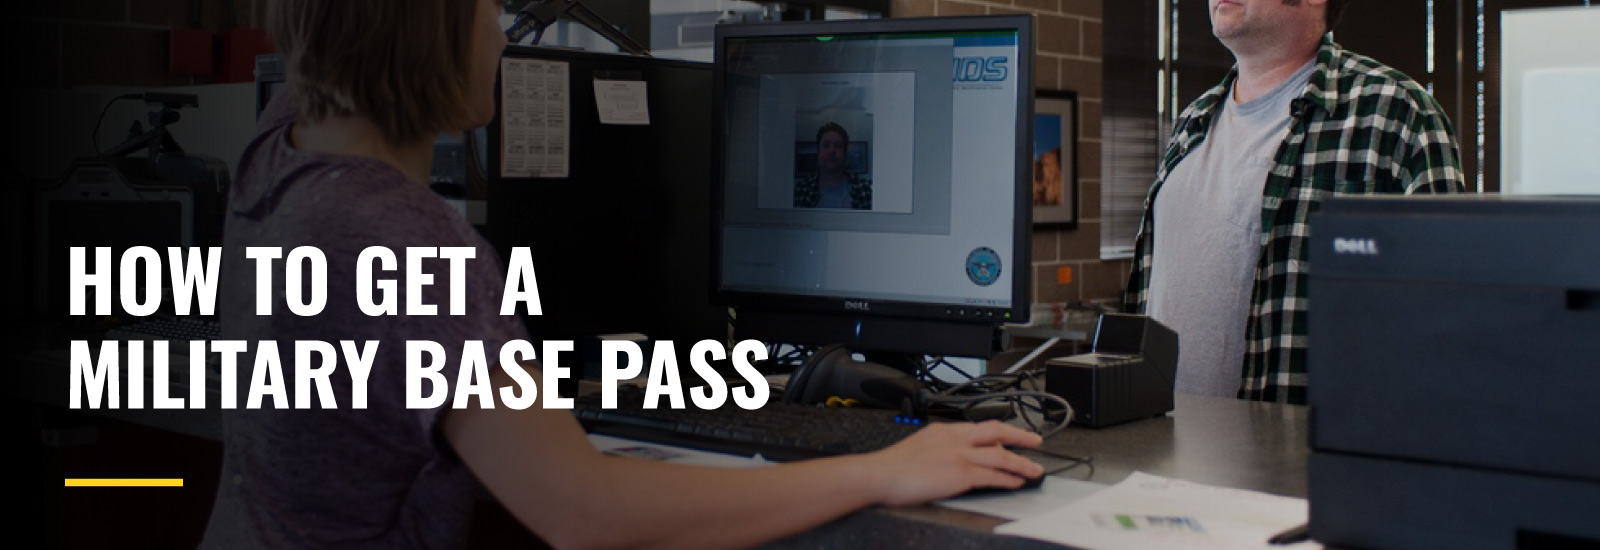 How to Get a Military Base Pass